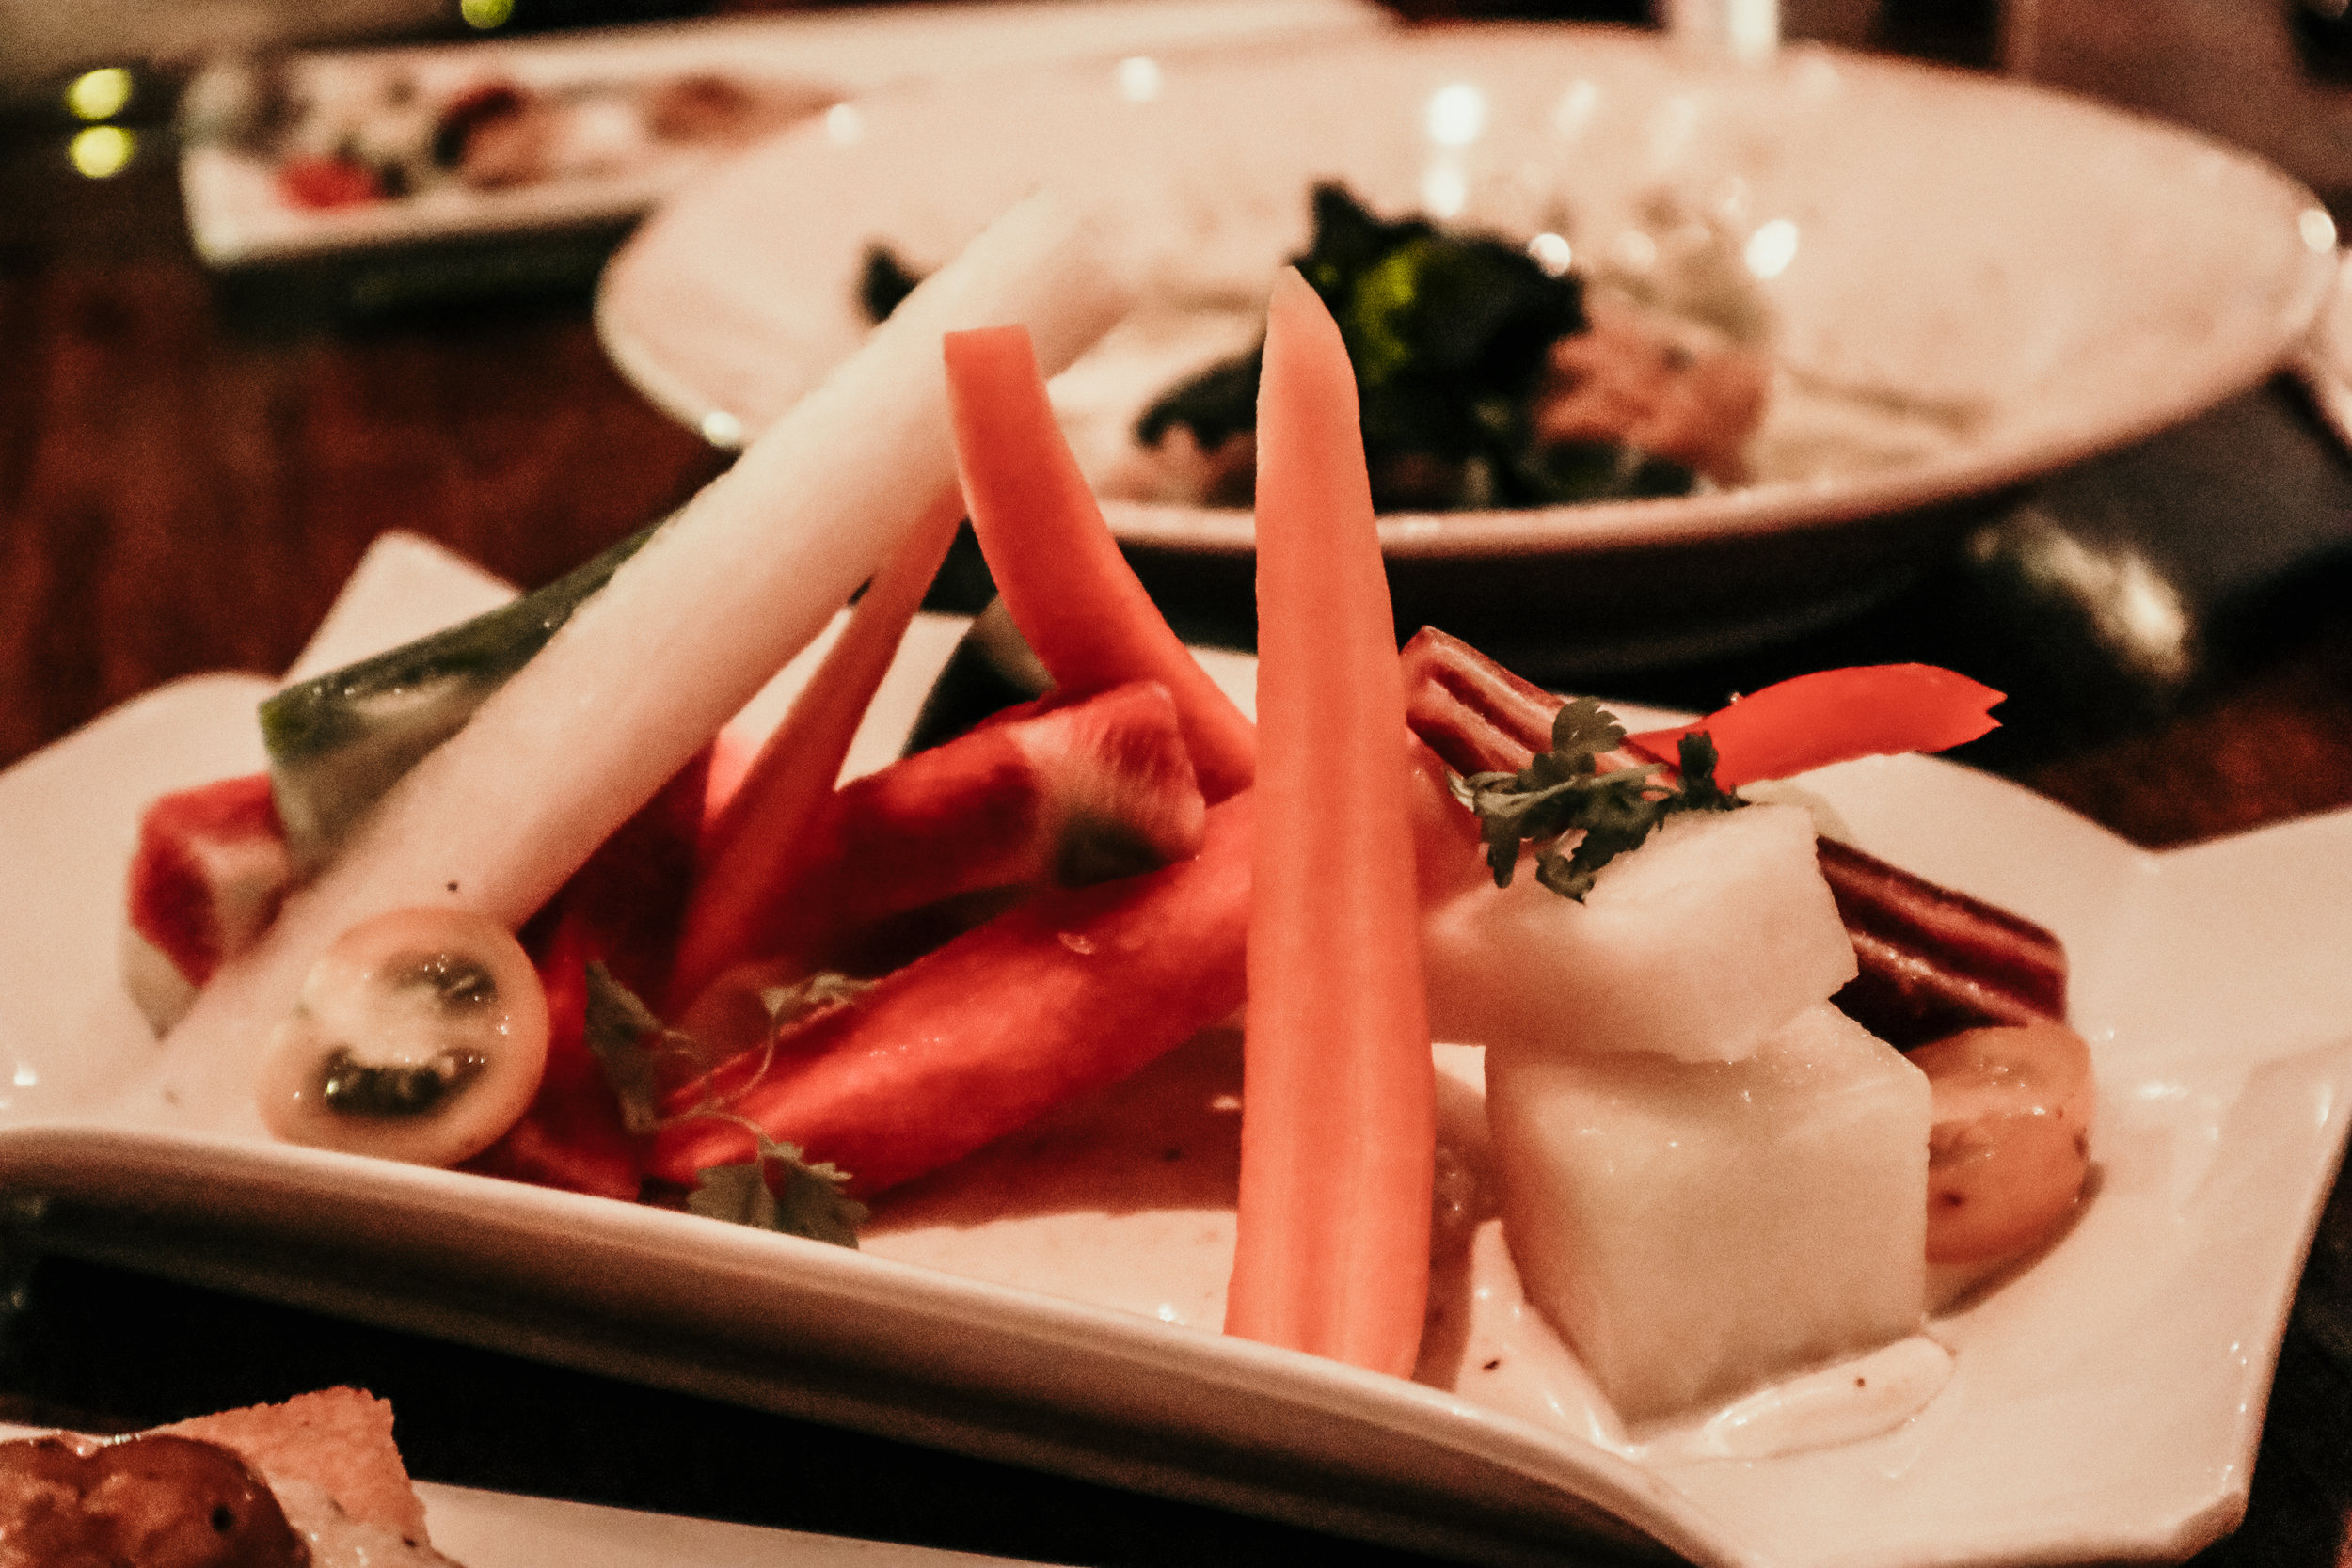 Garden Crudités with Fennel Aioli at Vedge Restaurant in Philadelphia - photo by Ash Burns